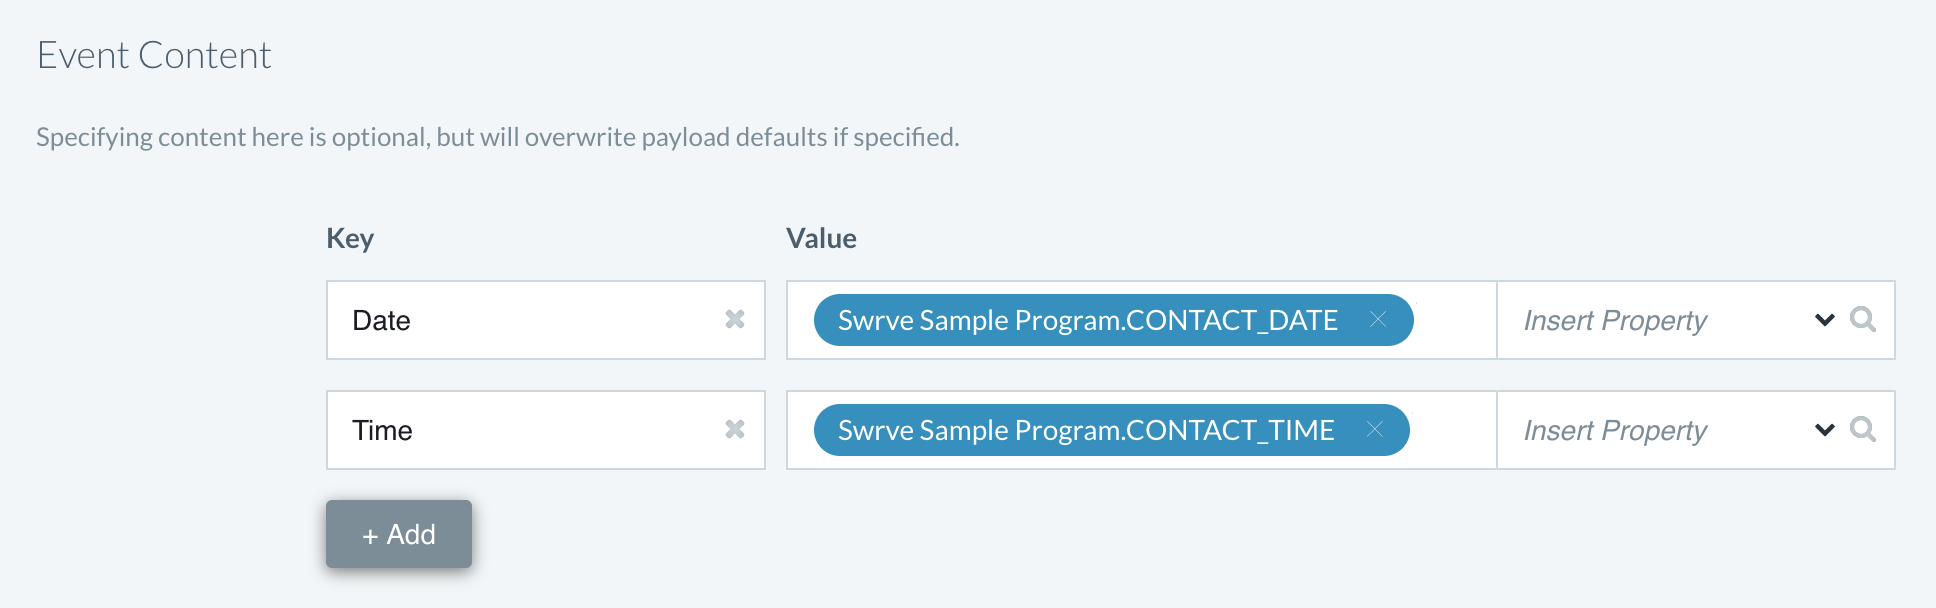 Track event with event payload content